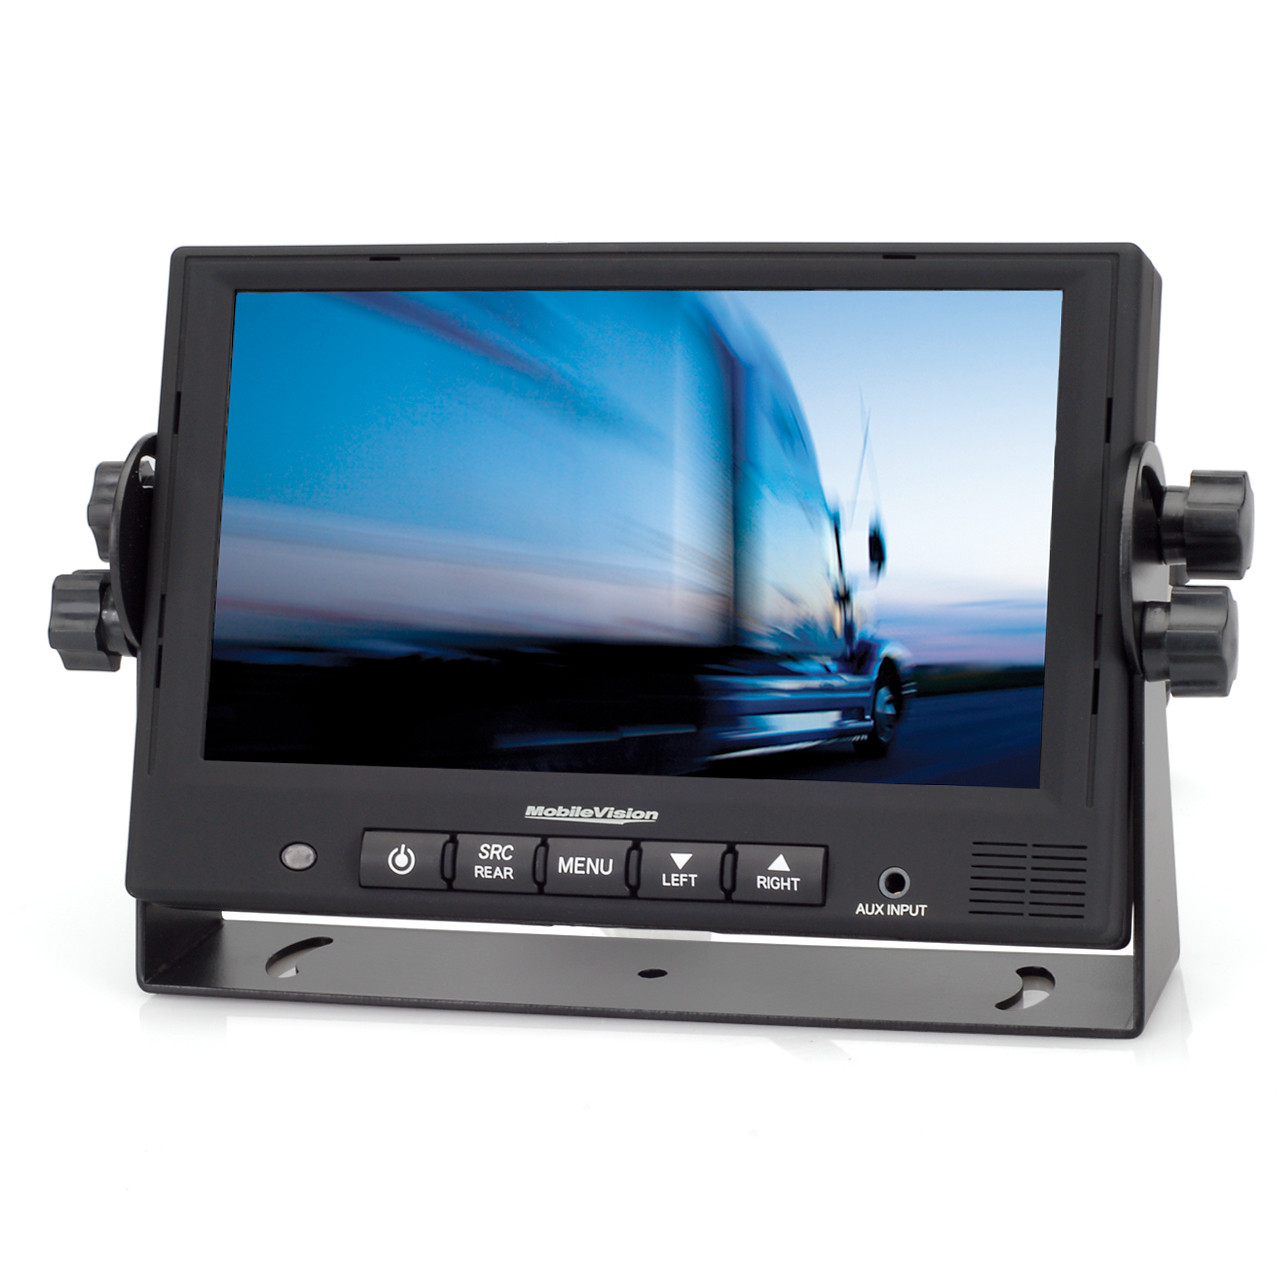 hight resolution of mobilevision m130c 7 color lcd safety camera monitor front view